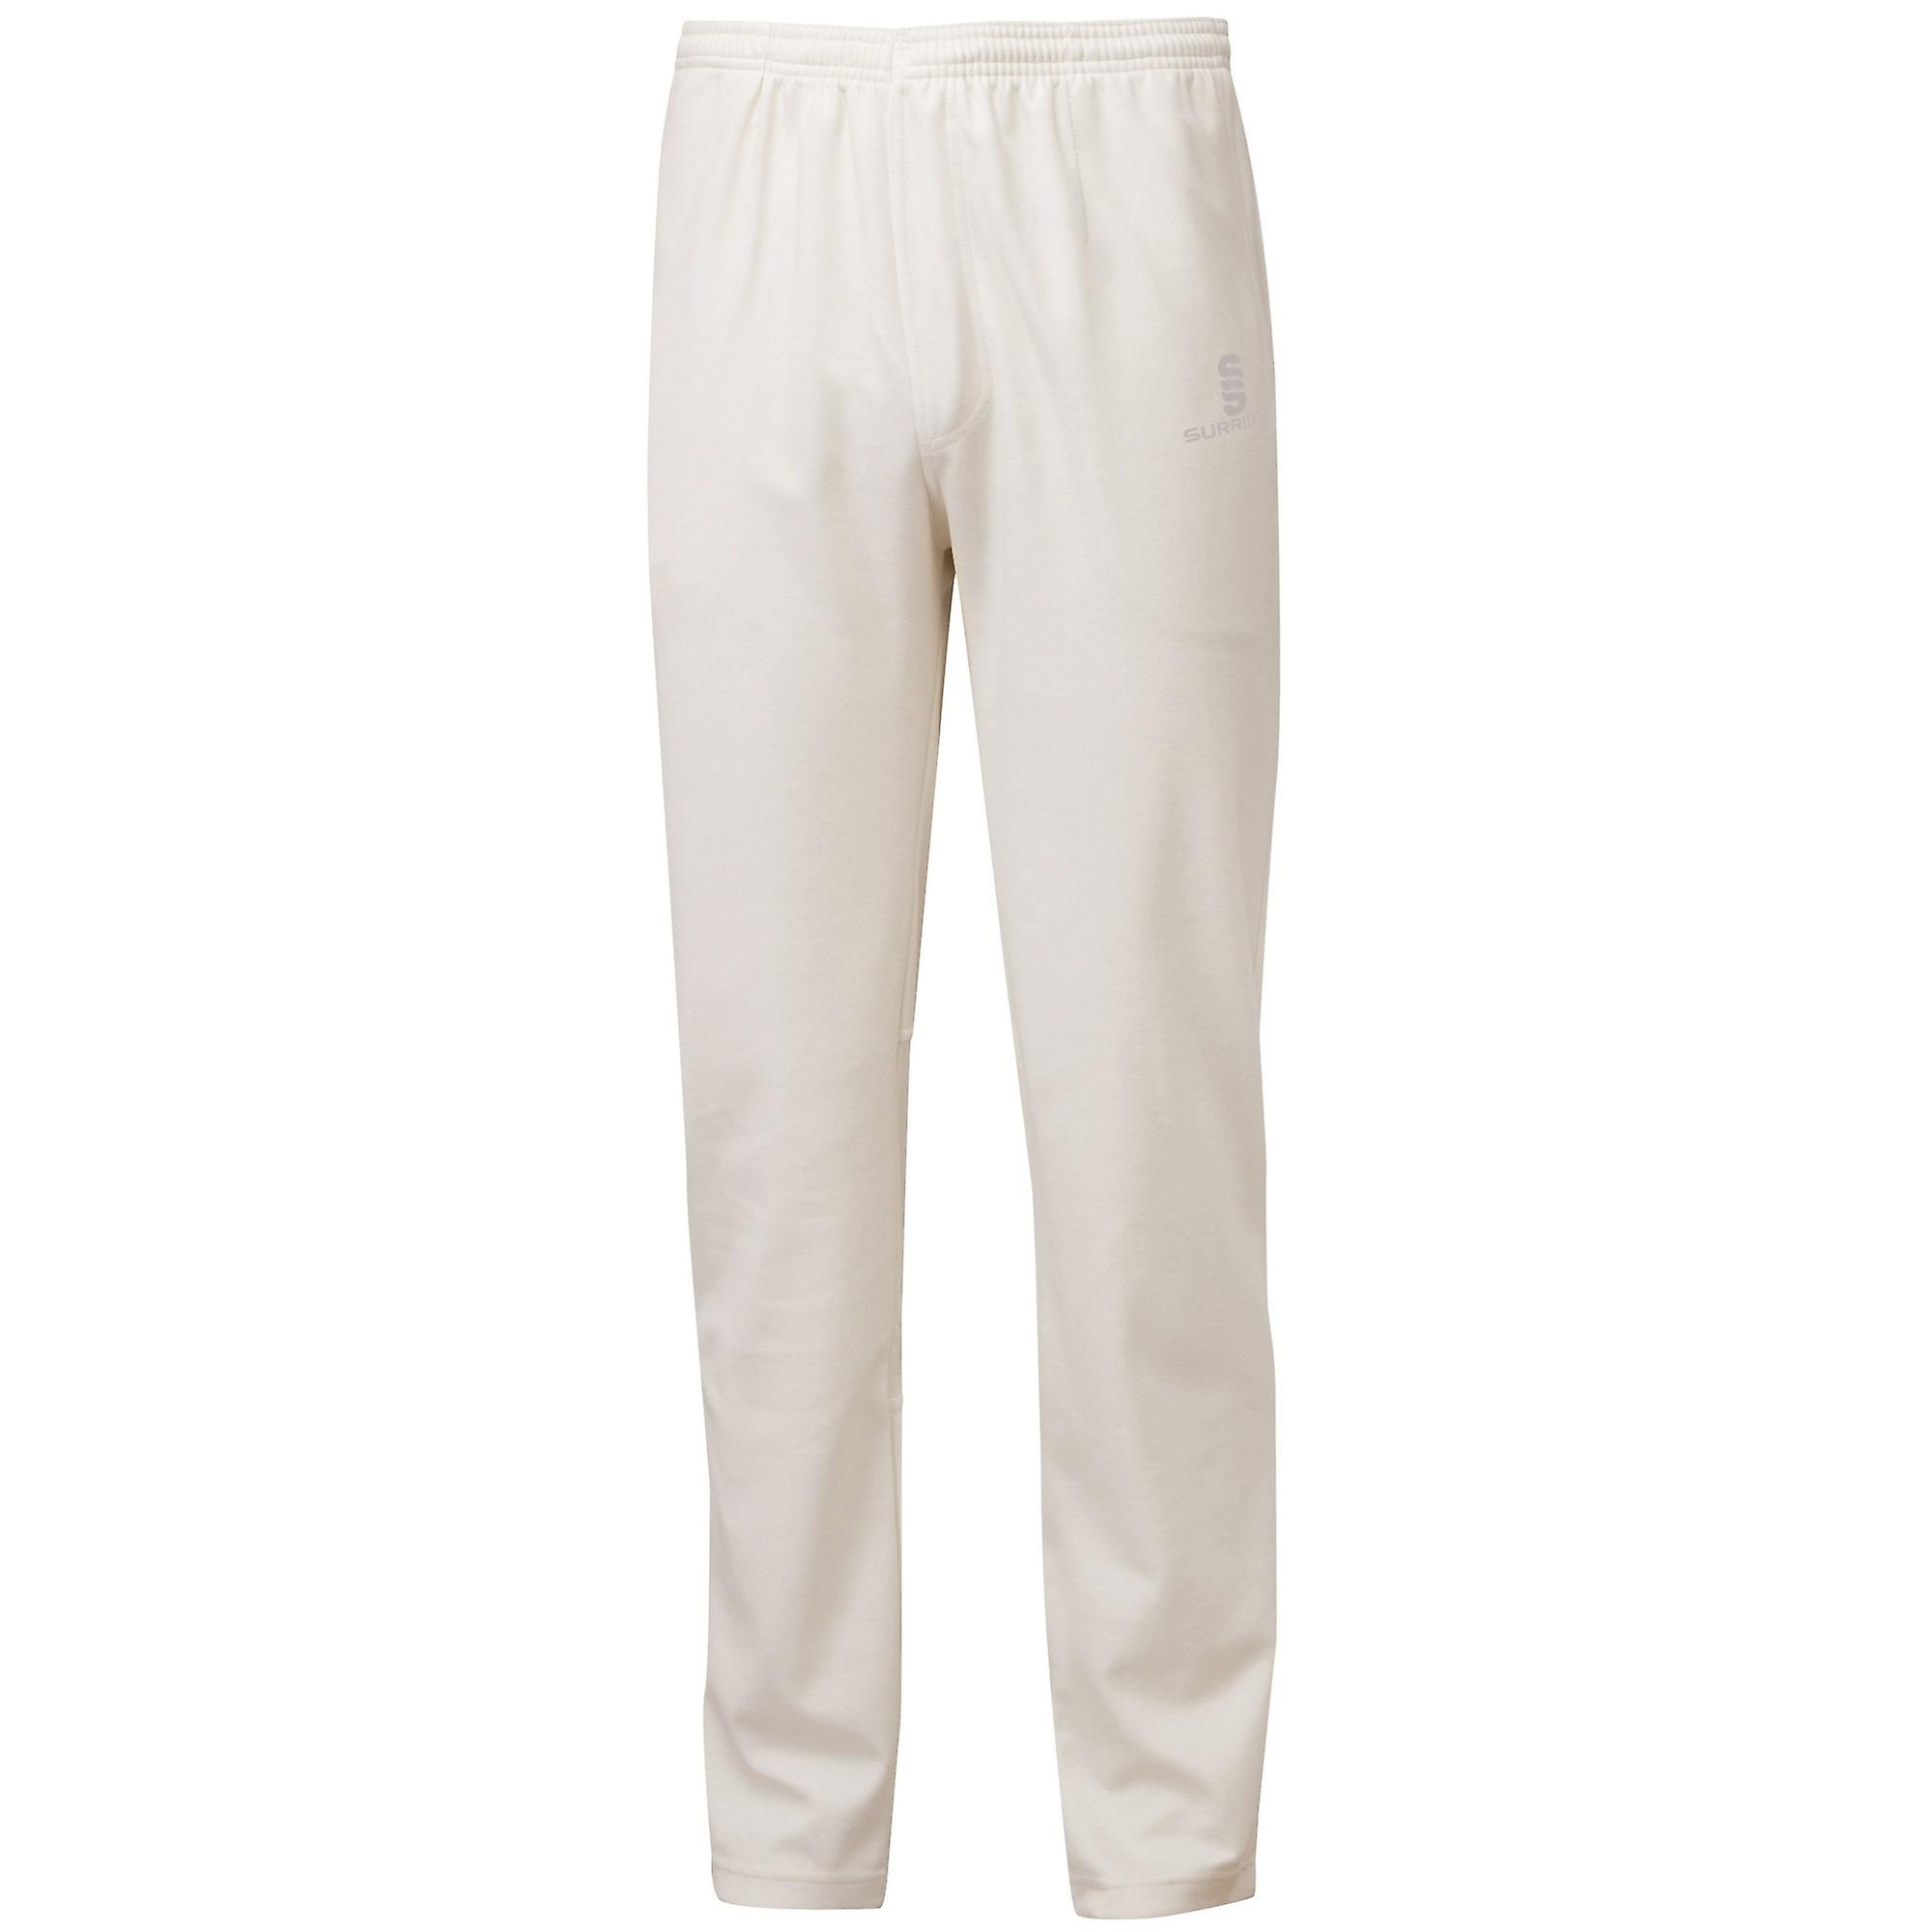 Surridge Junior Cricket Ergo Jeans Pantalons